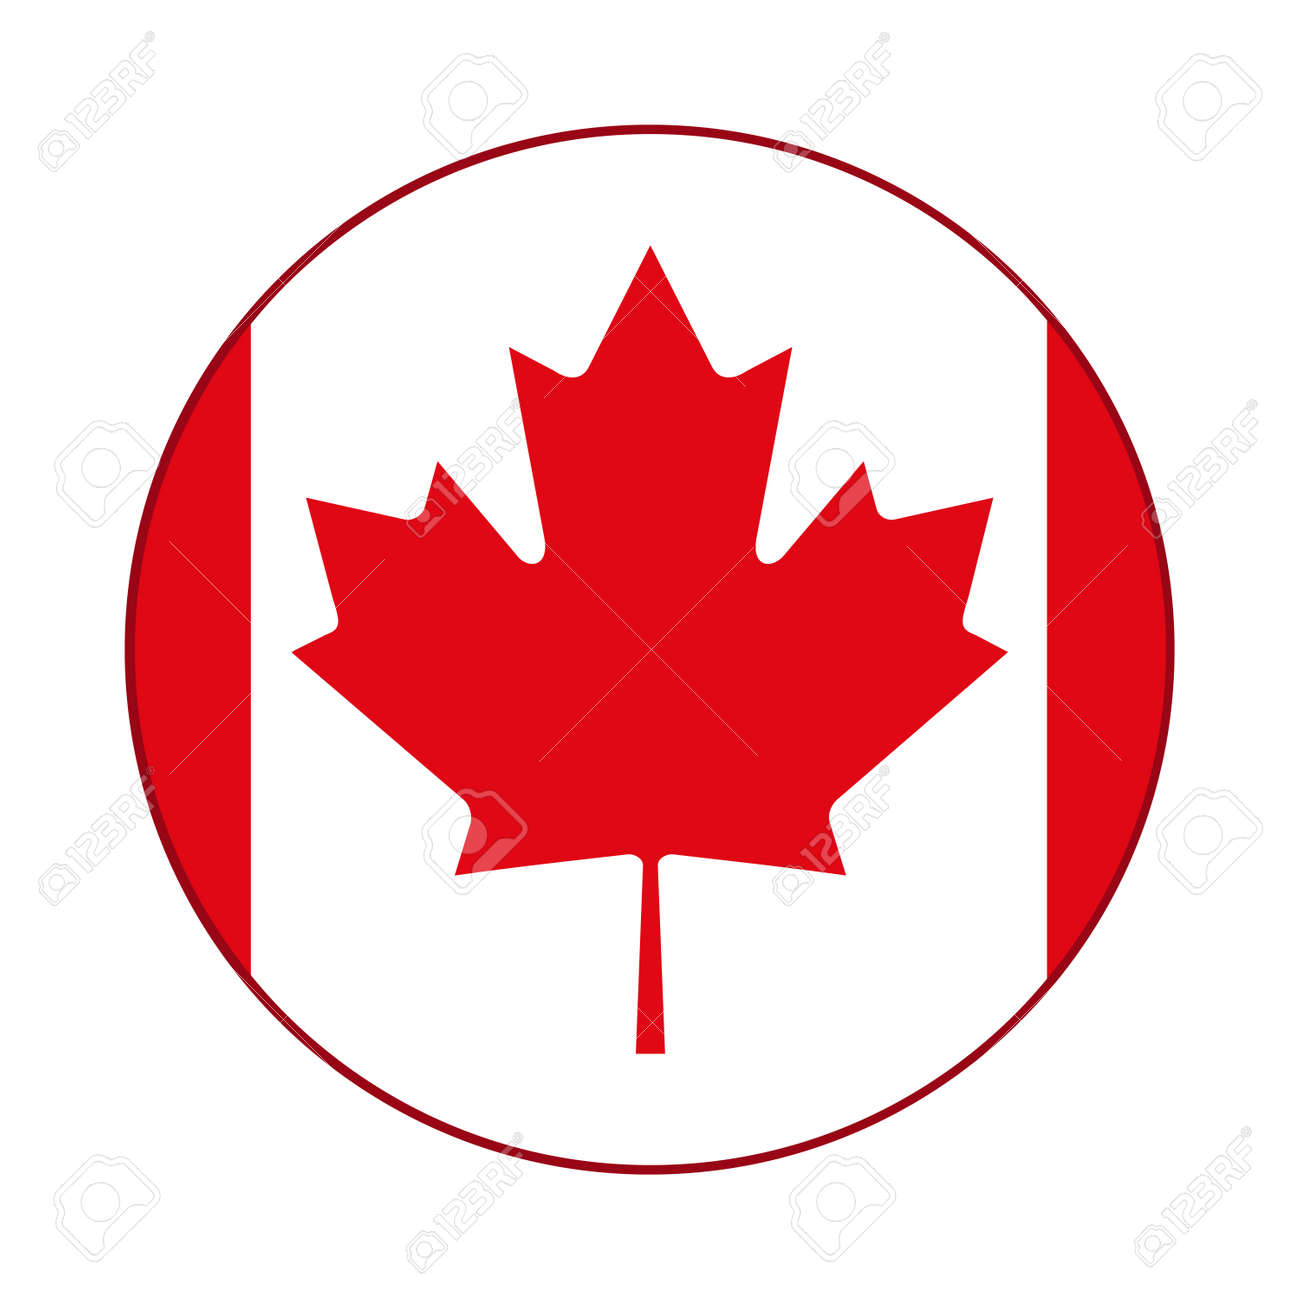 Canadian Flag Red Maple Leaf Badge Royalty Free Cliparts Vectors And Stock Illustration Image 75489045